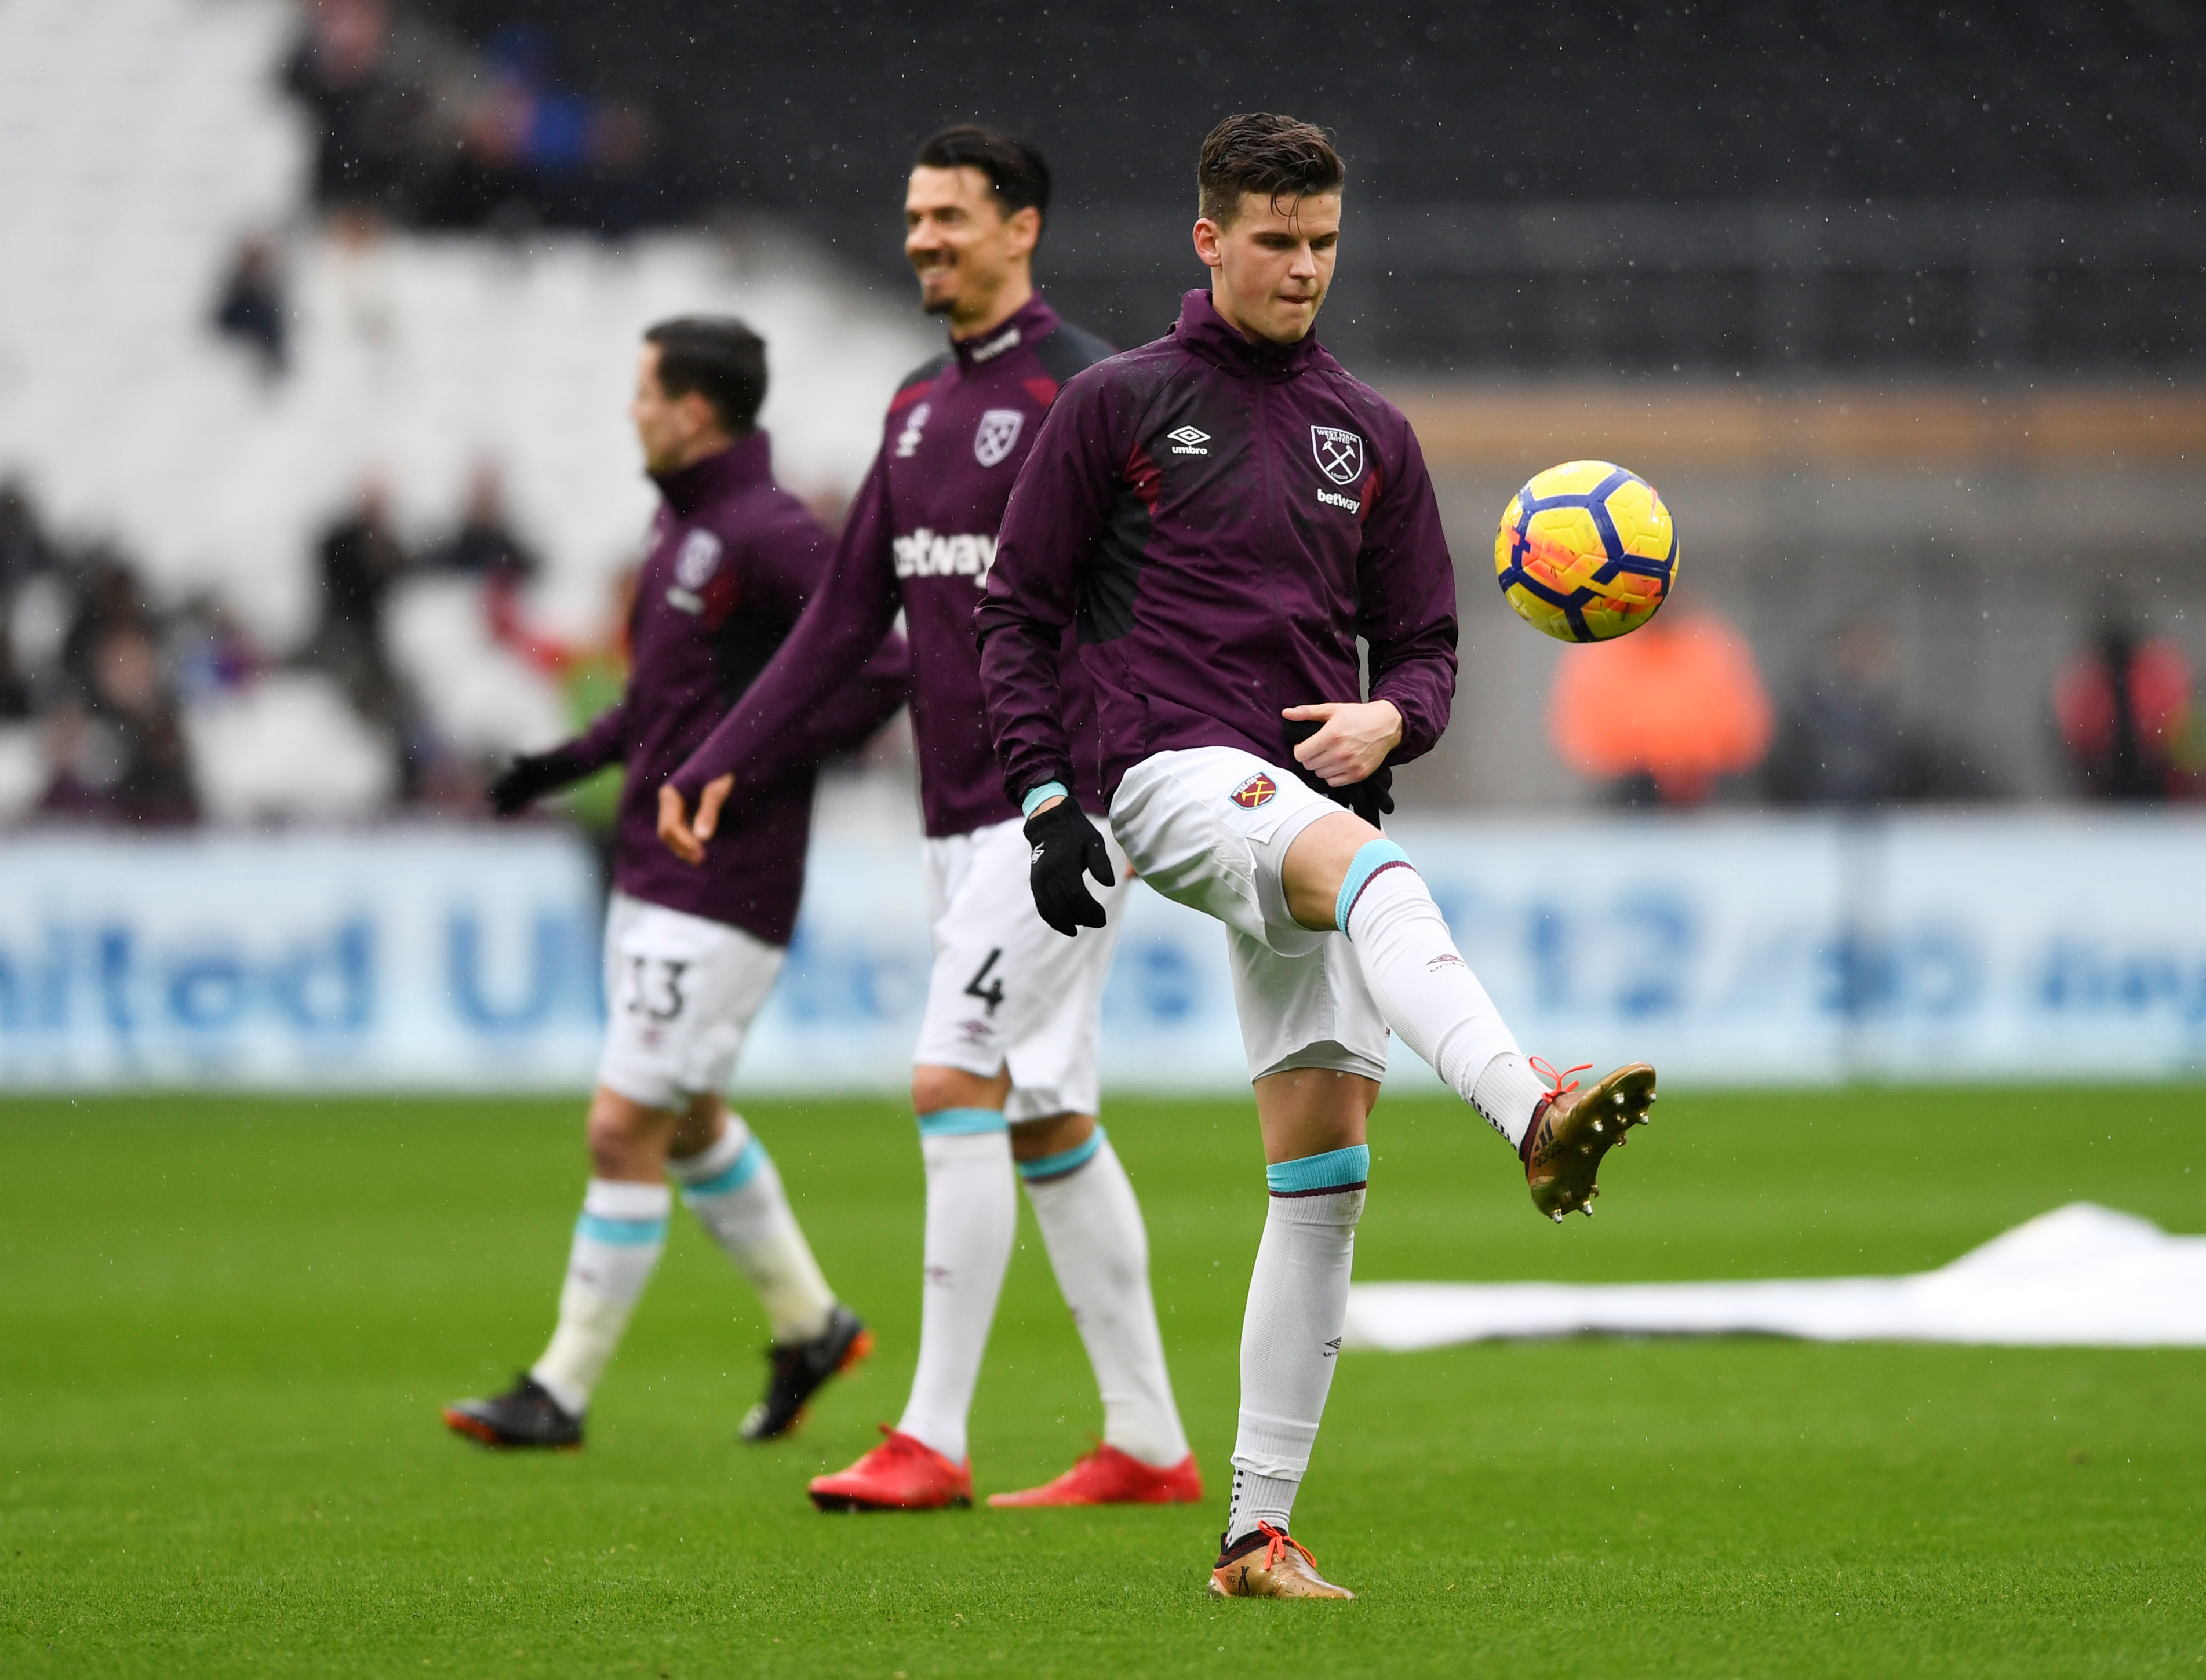 FILE PHOTO: Soccer Football - Premier League - West Ham United vs Watford - London Stadium, London, Britain - February 10, 2018   West Ham United's Sam Byram warms up before the match    Action Images via Reuters/Tony O'Brien